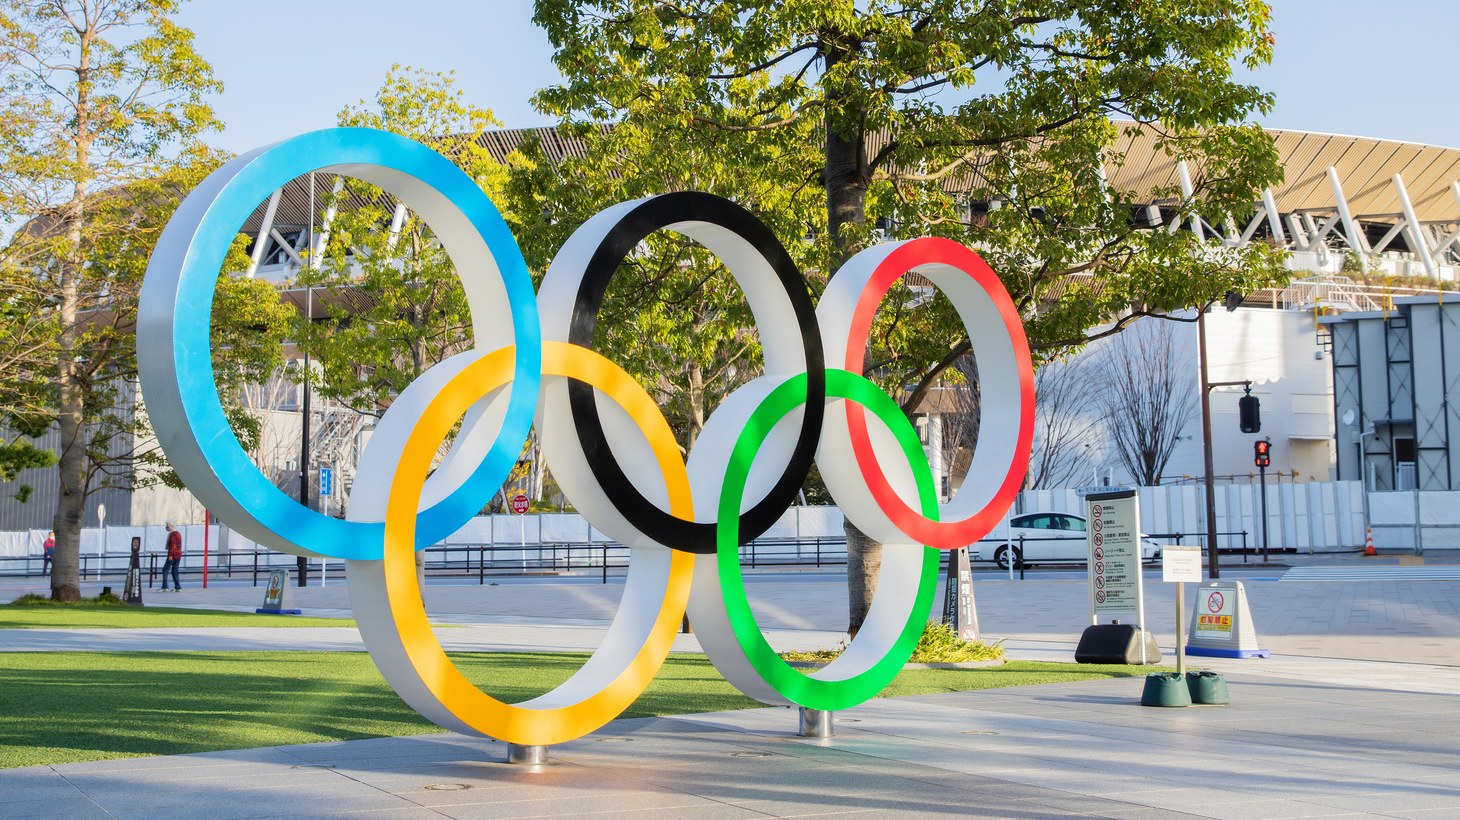 The Olympic symbol is installed in front of the national stadium in Tokyo, Japan, March 17, 2021.